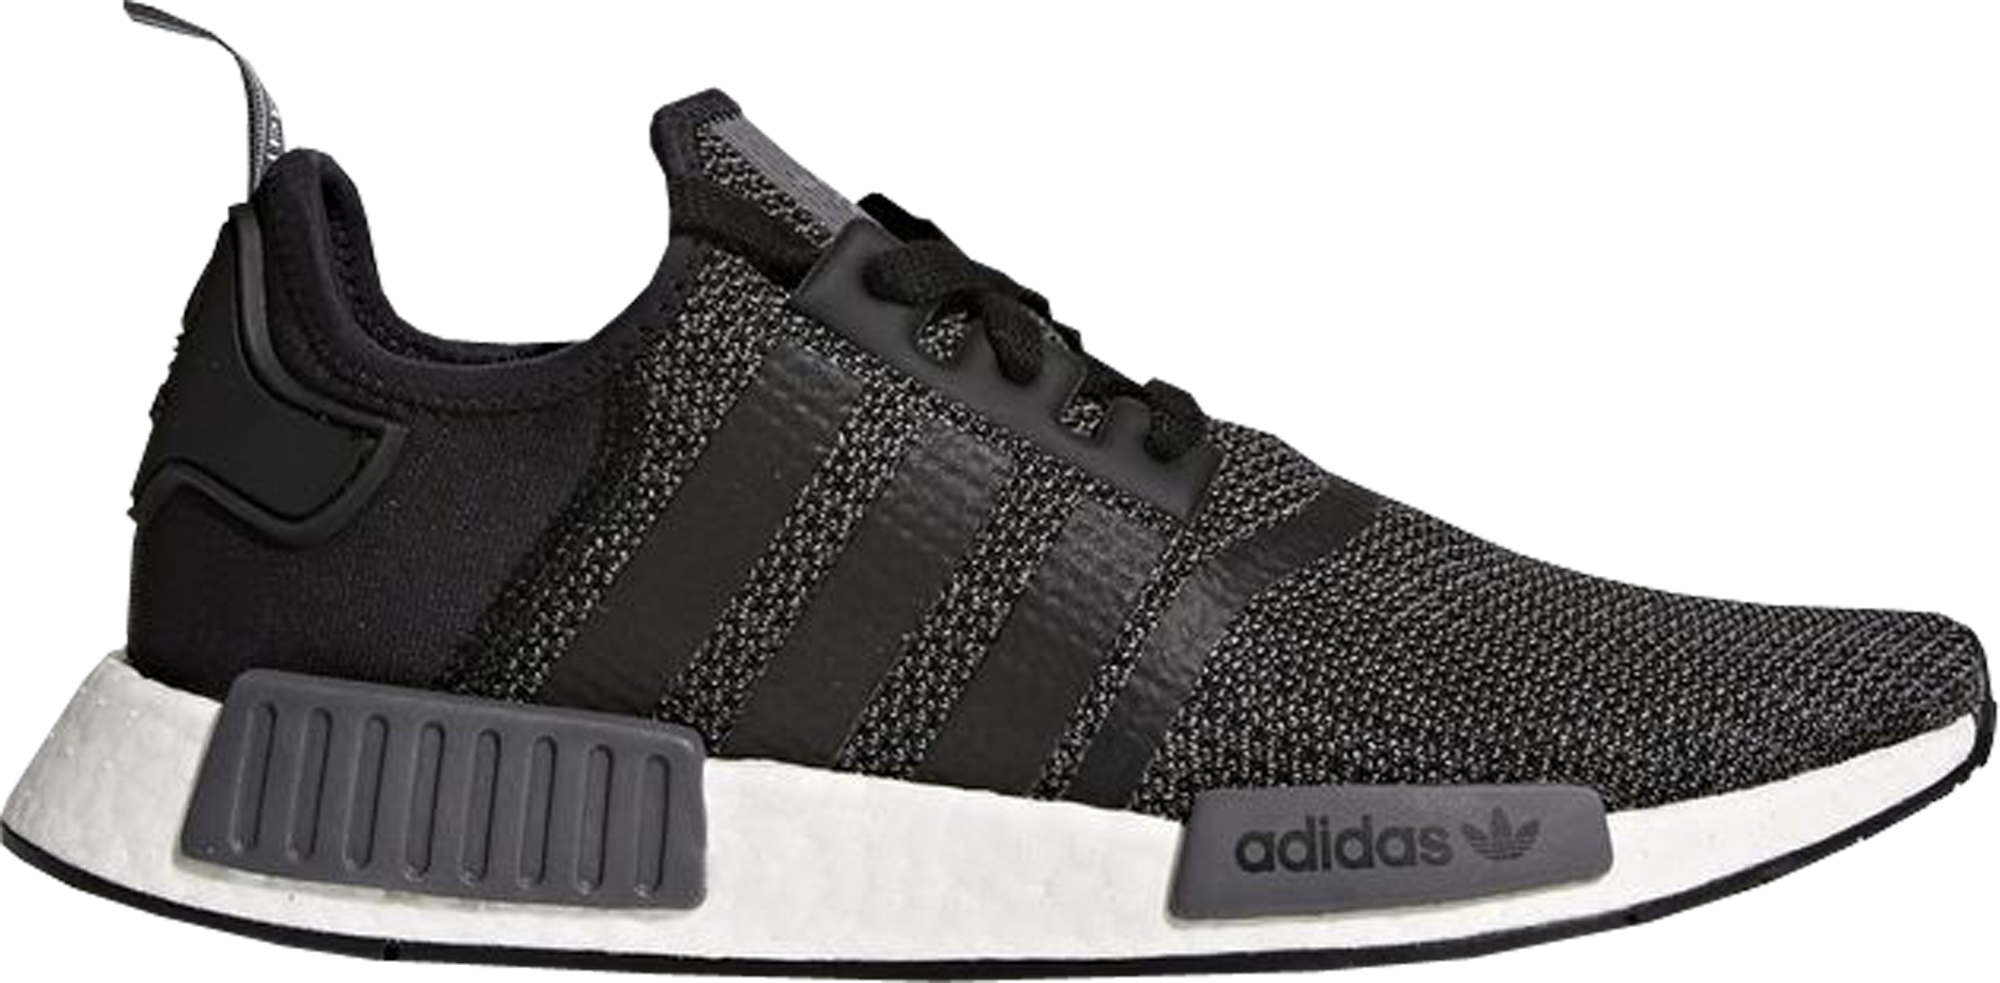 adidas NMD R1 Core Black Carbon